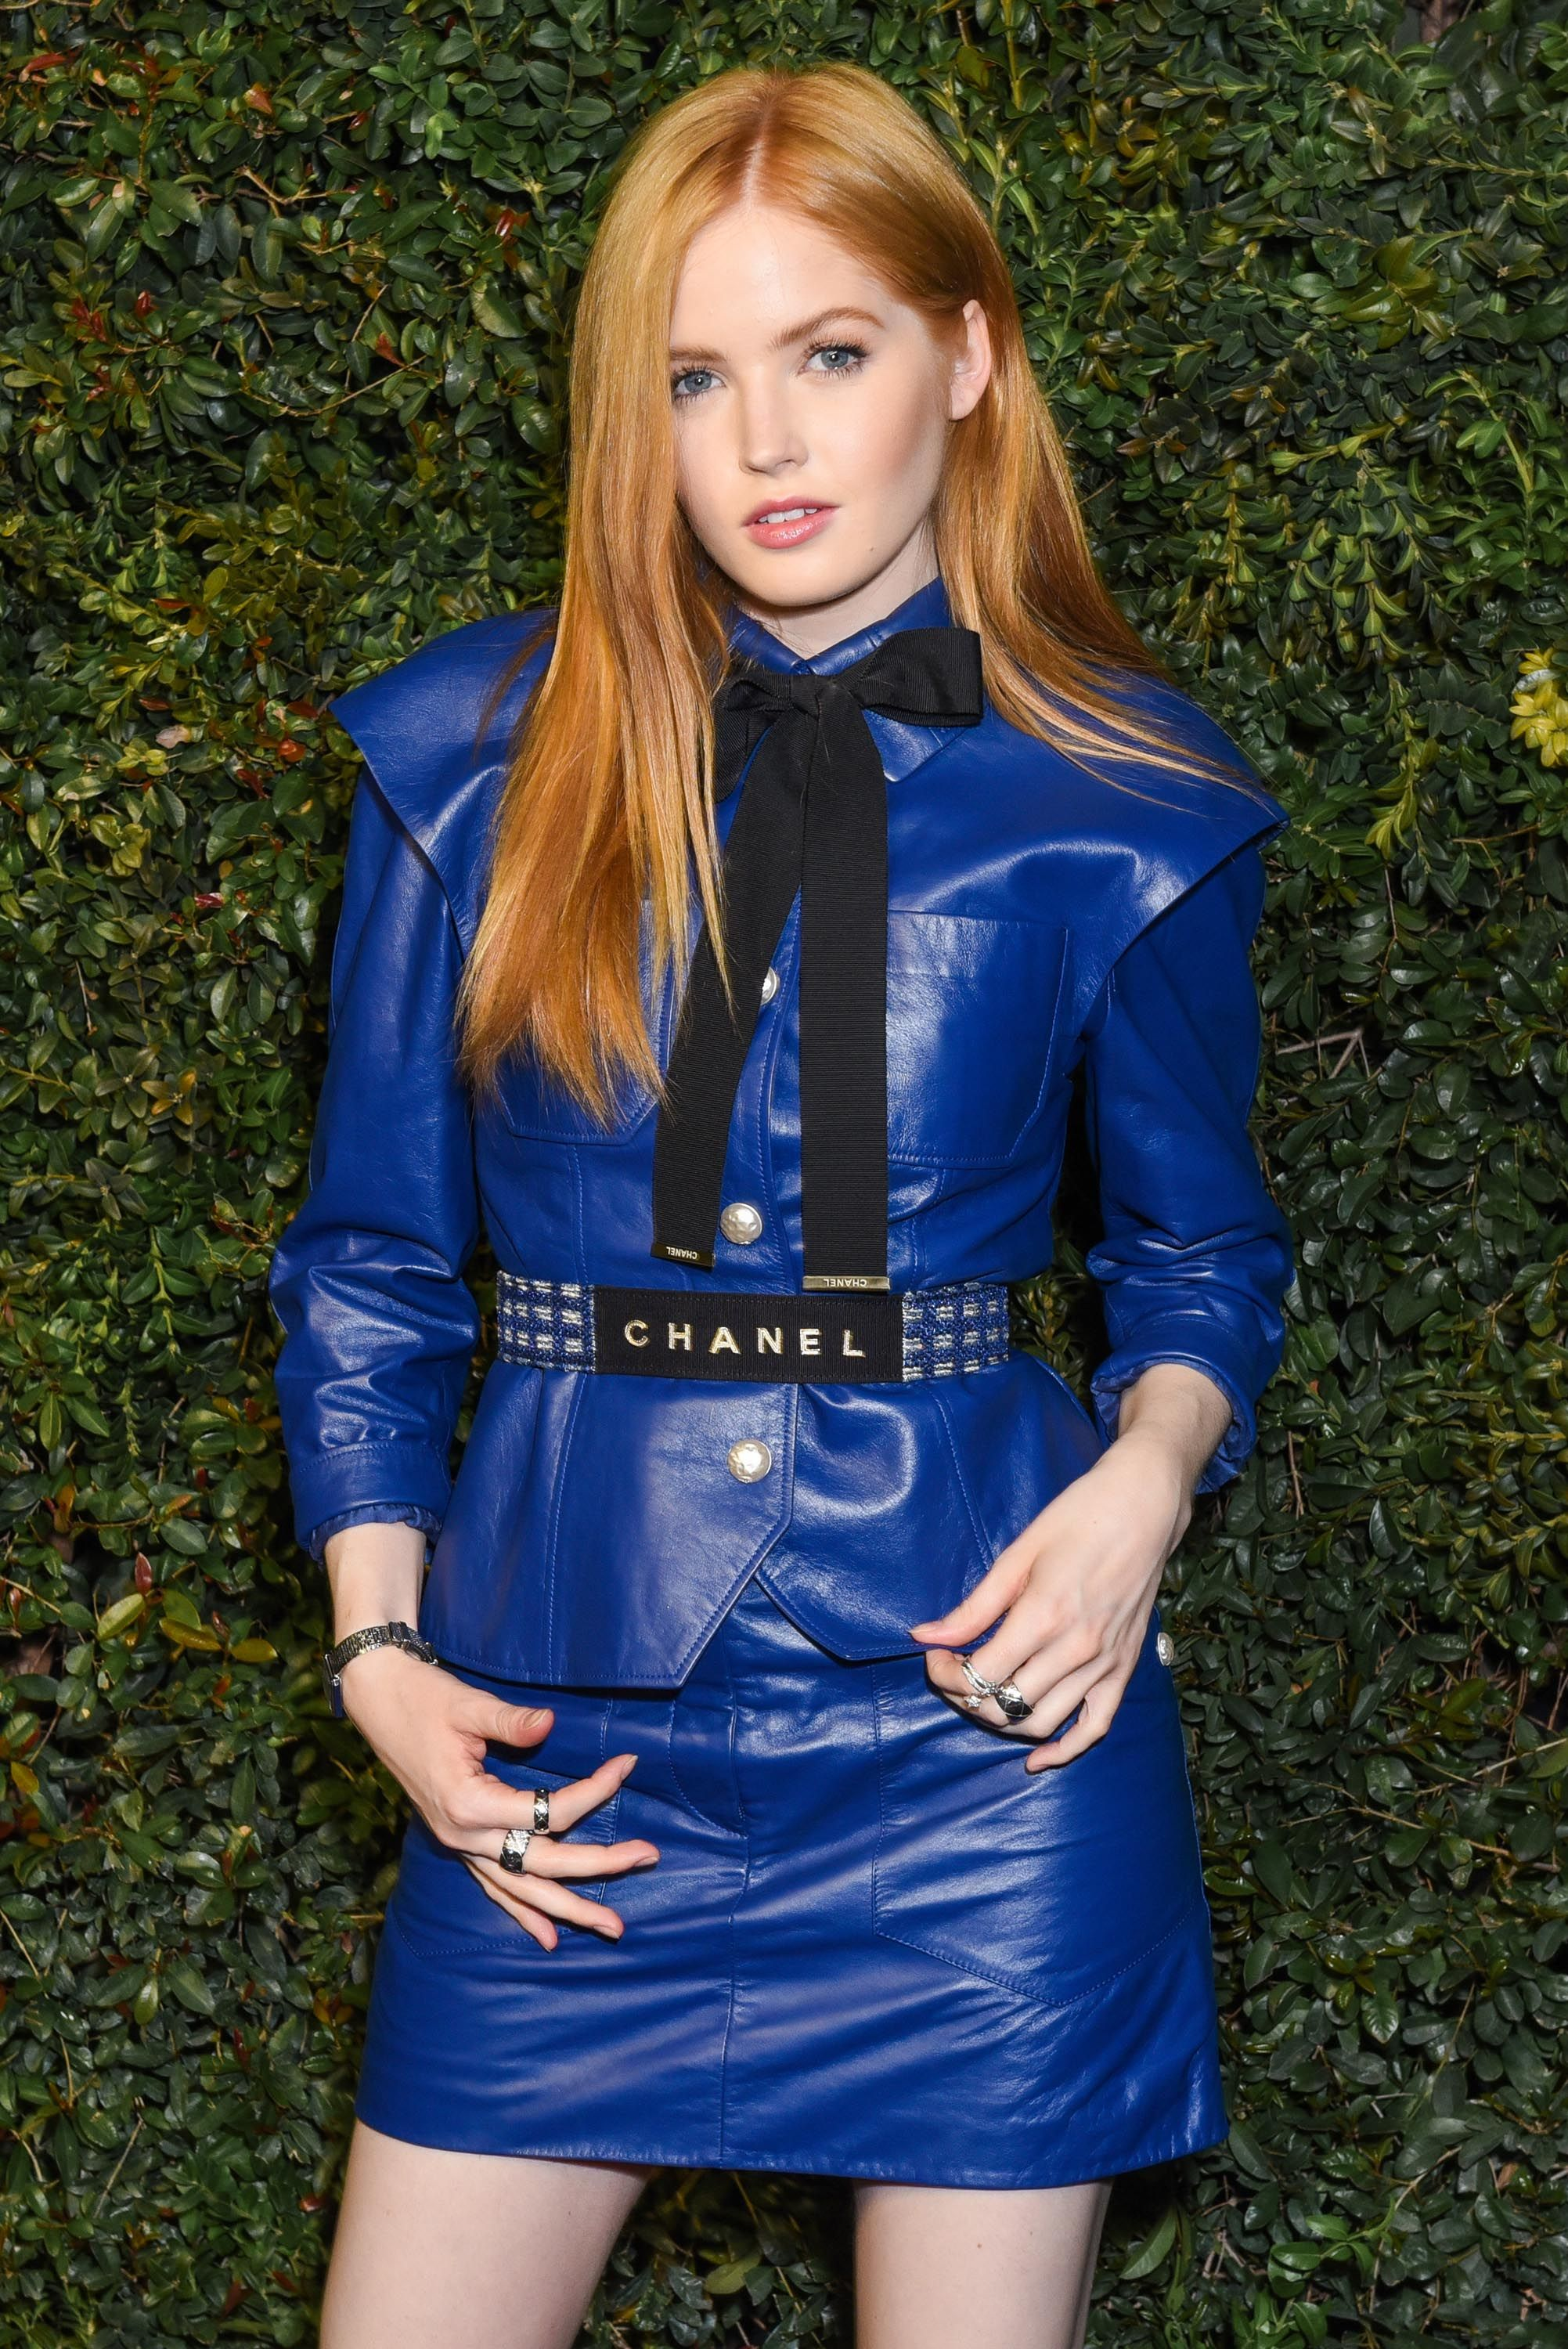 Ellie Bamber Attends The Charles Finch And Chanel Pre Oscar Awards Rodeo Pants In Black Dinner